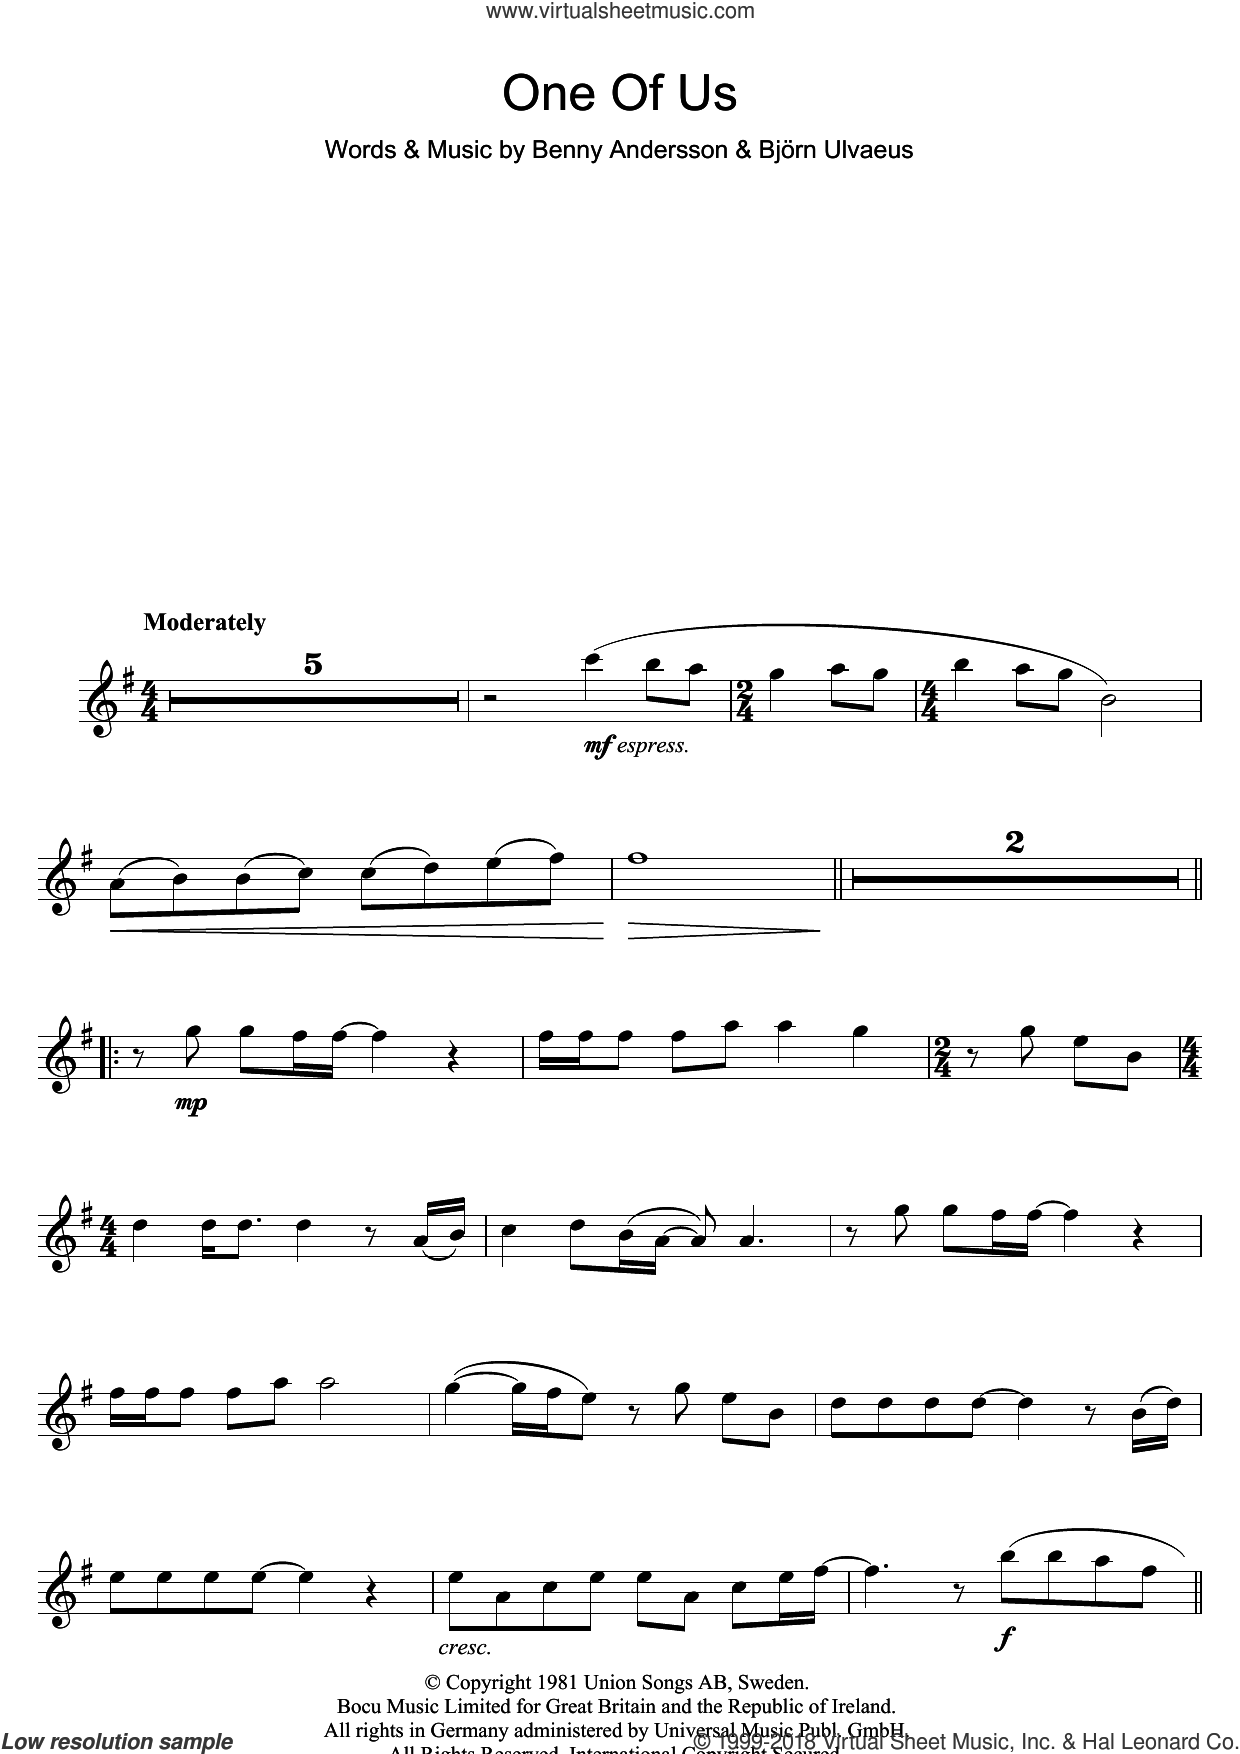 One Of Us sheet music for flute solo by ABBA, Benny Andersson and Bjorn Ulvaeus, intermediate skill level